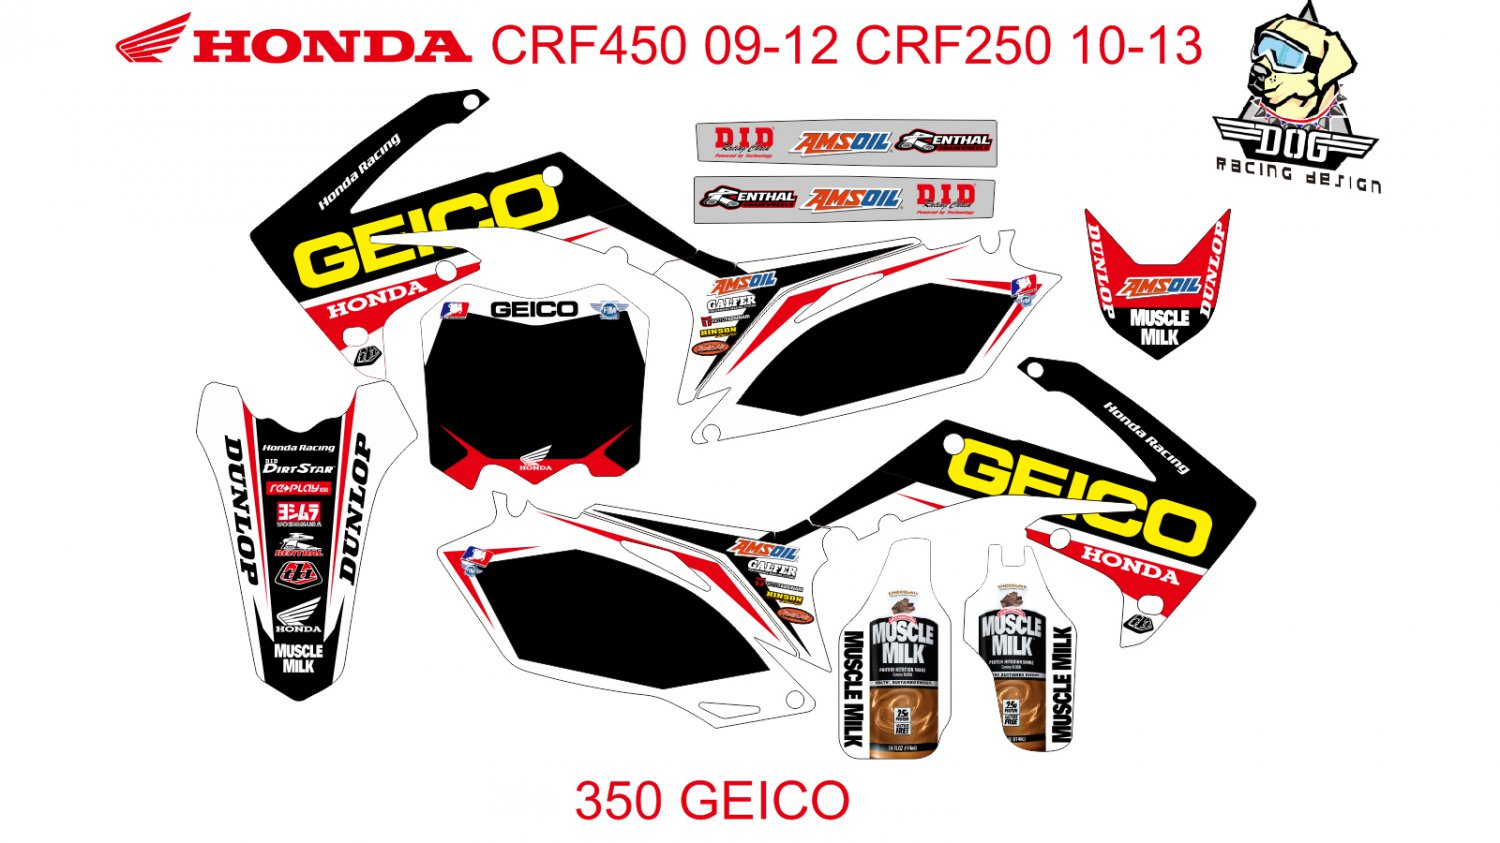 HONDA CRF250 2010-2013 CRF450 2009-2012 GRAPHIC DECAL KIT CODE.350